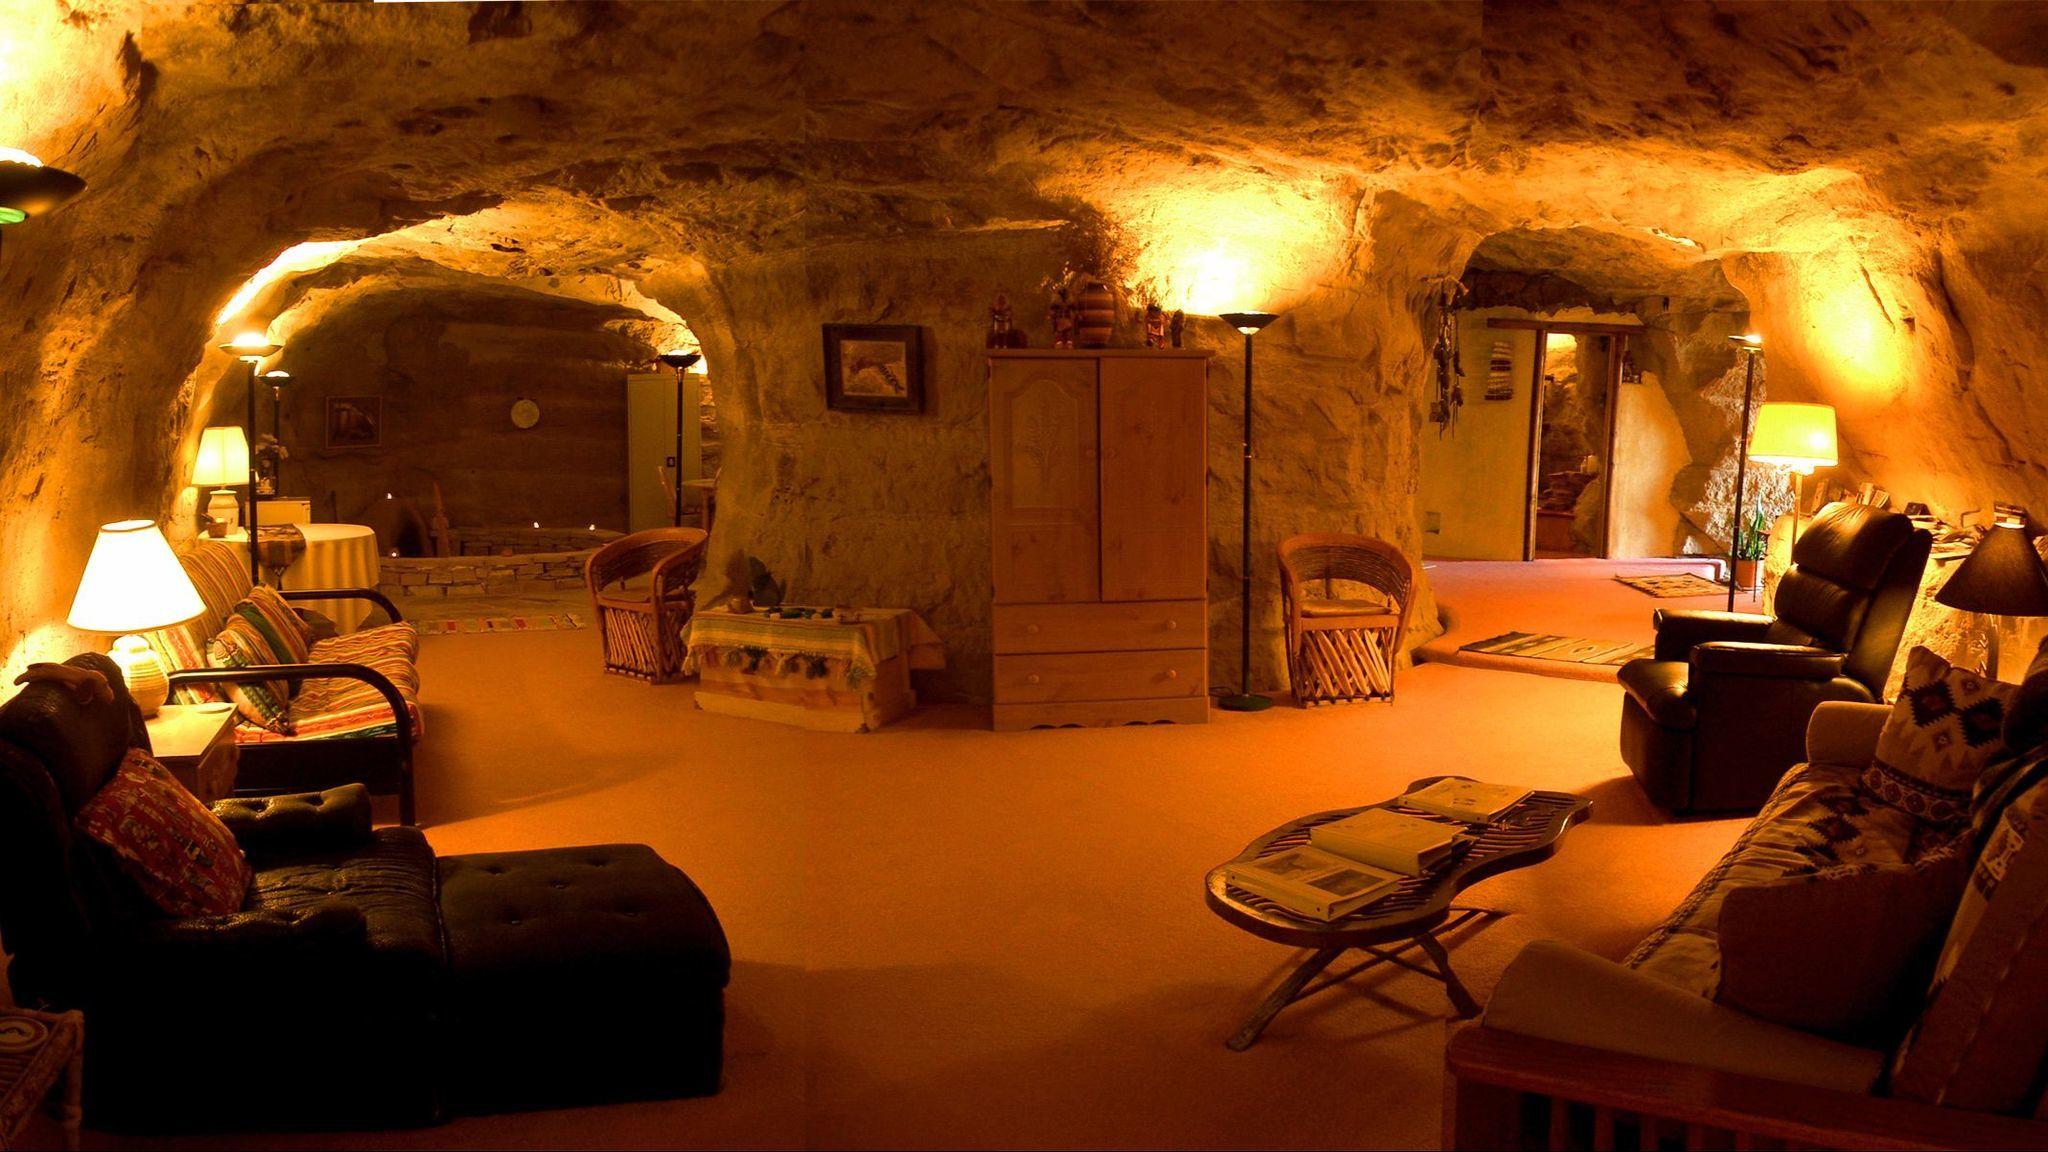 The man-made Kokopelli's Cave features multiple arches and room to relax. The exterior offers wide open views of the surrounding area.